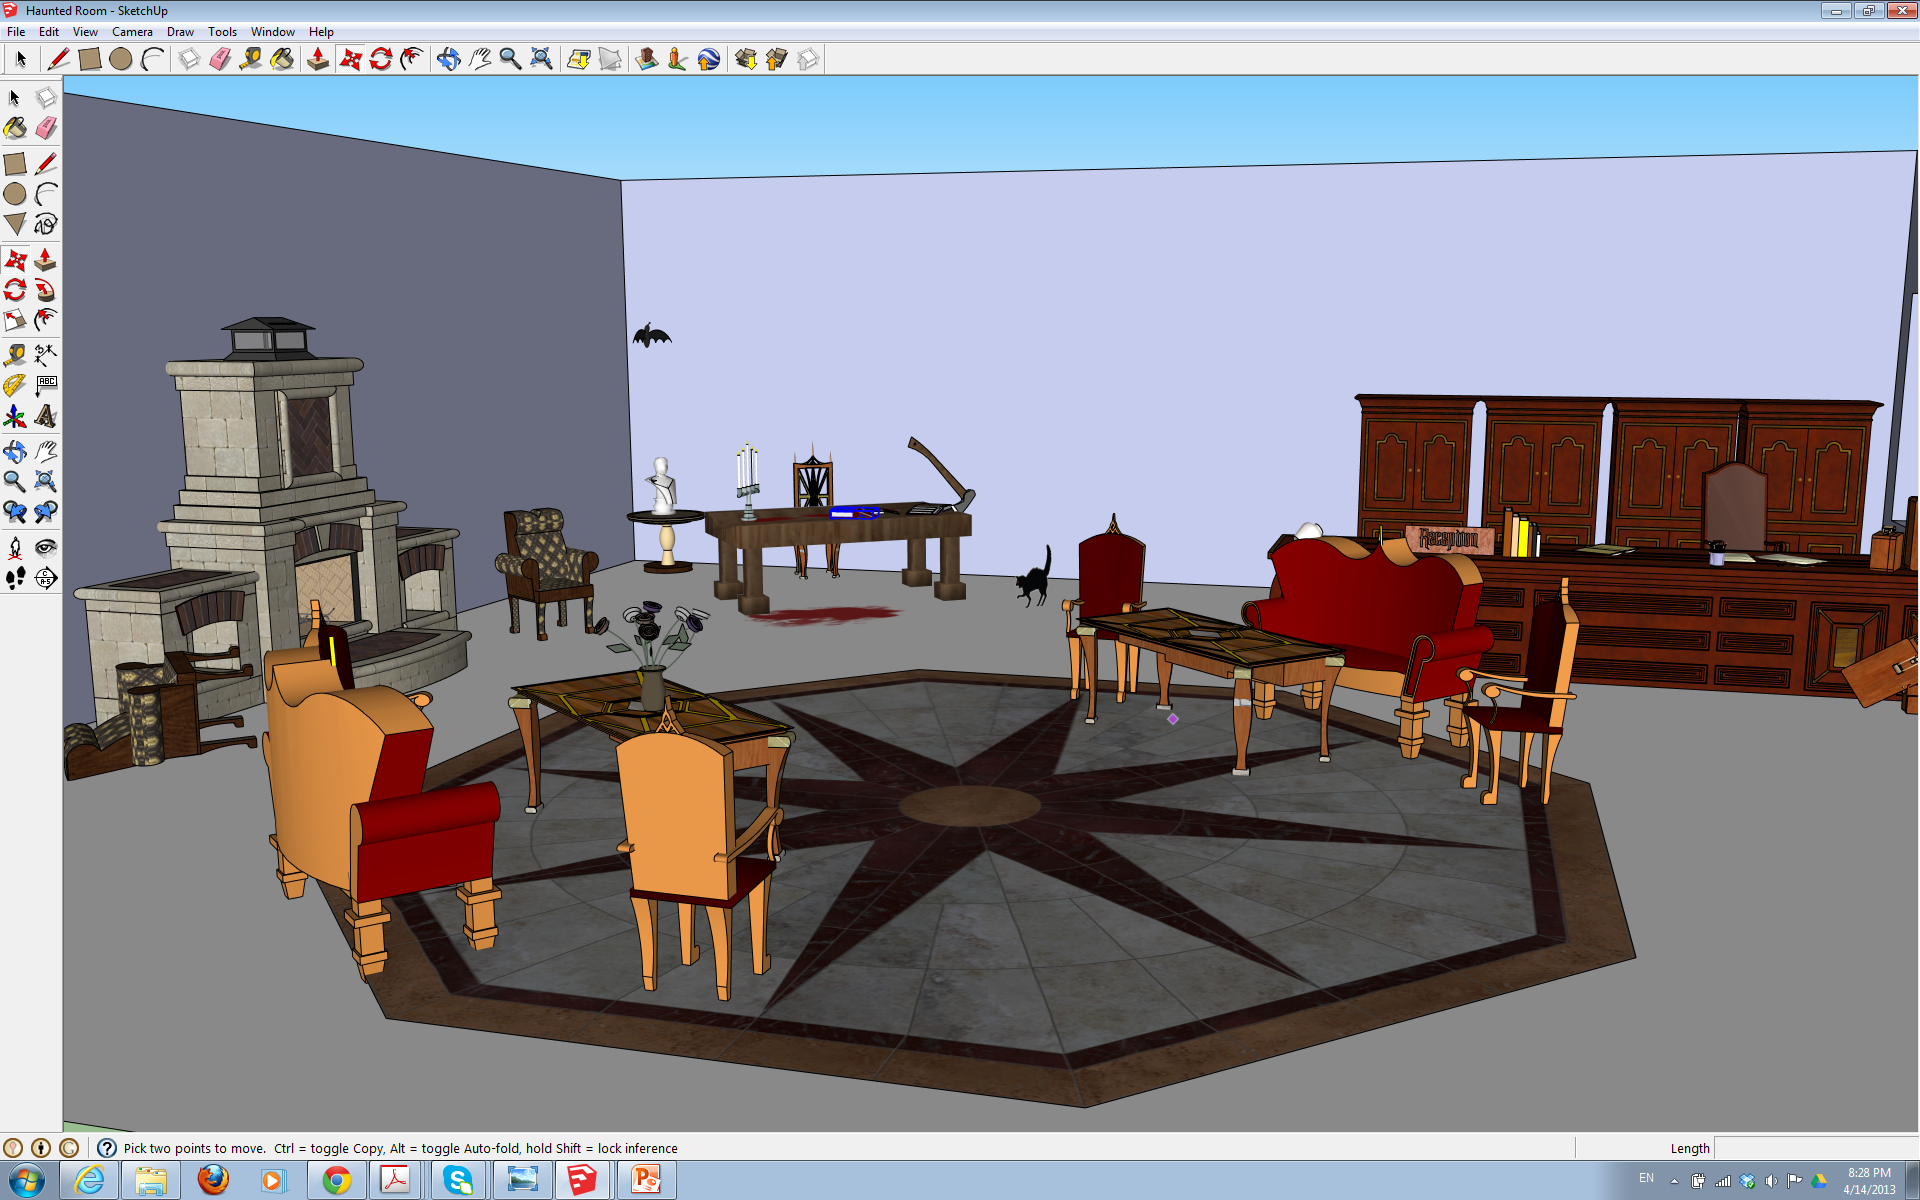 House ds 501 design in virtual reality for Home design virtual reality